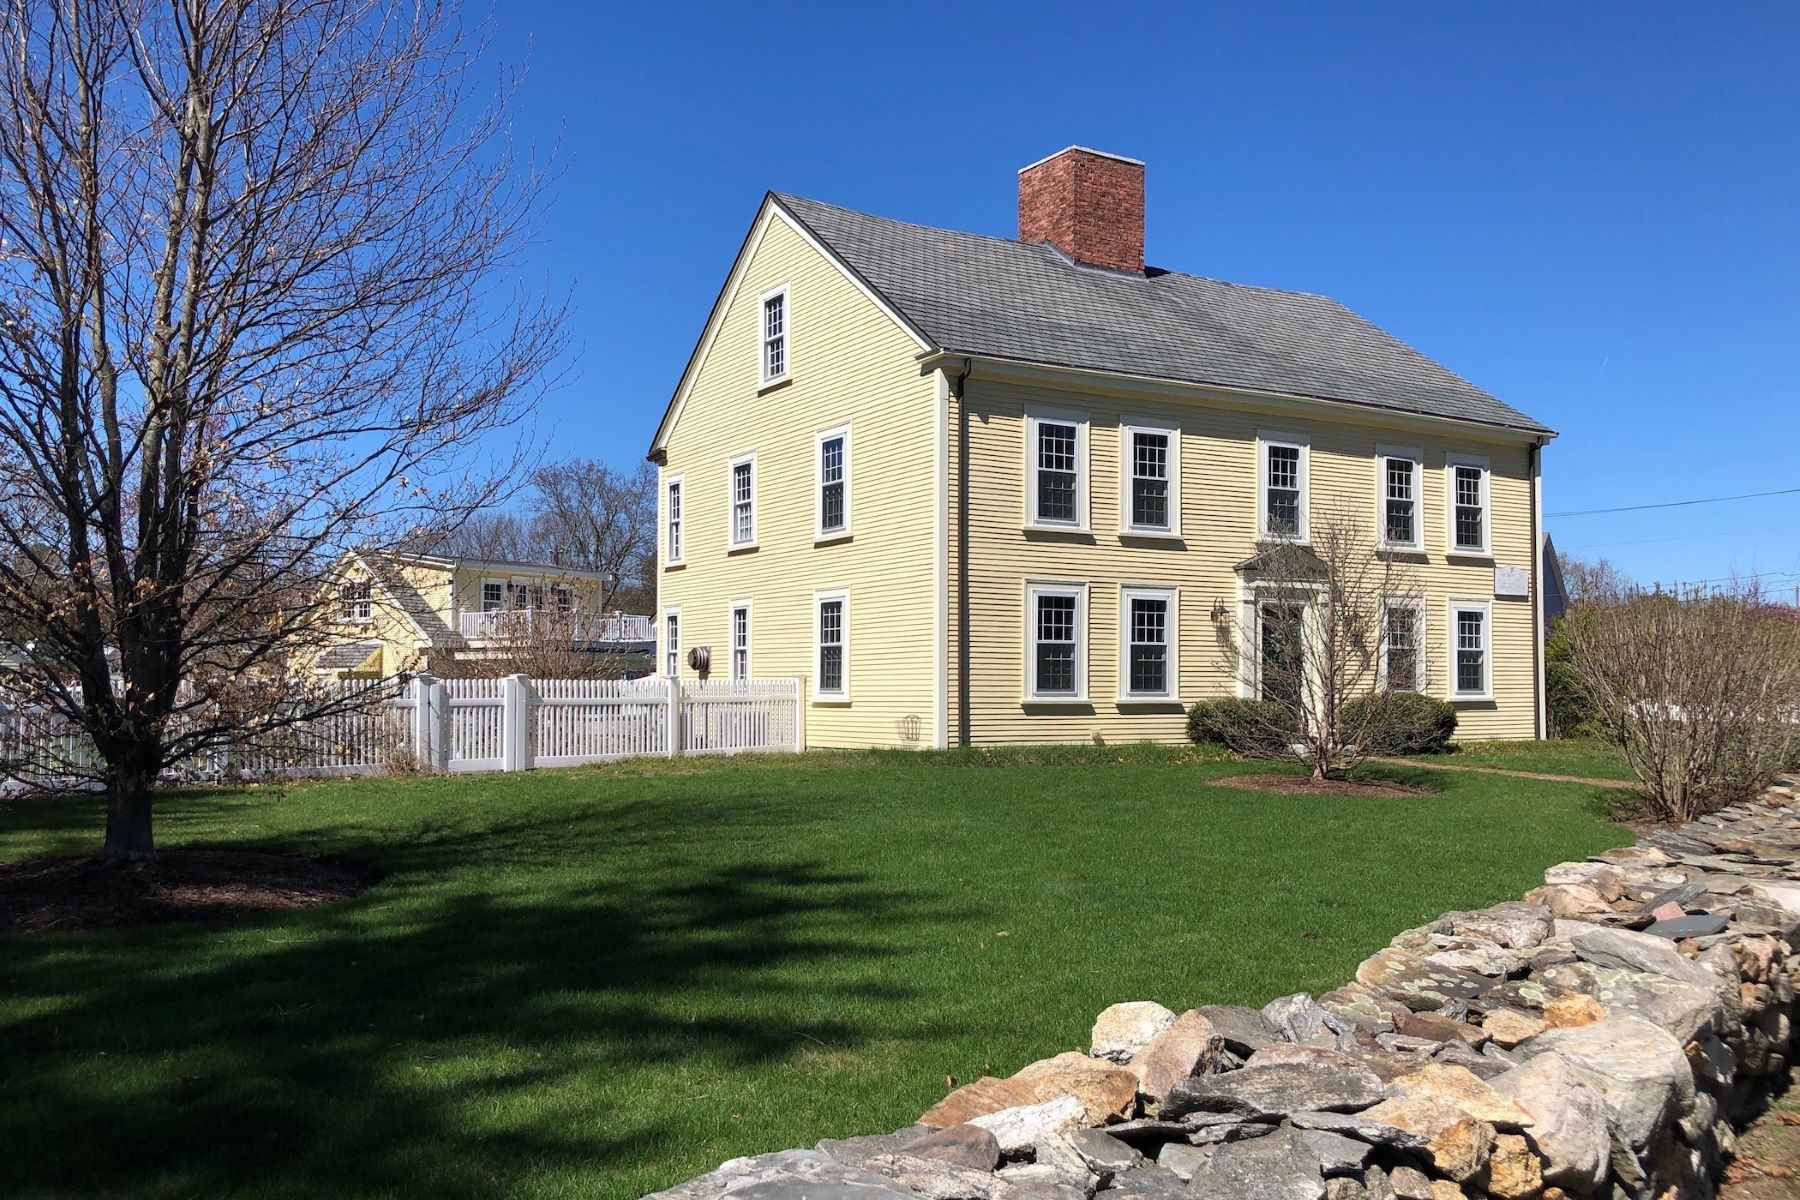 Single Family Home for Active at 191 Concord Road, Bedford 191 Concord Rd Bedford, Massachusetts 01730 United States